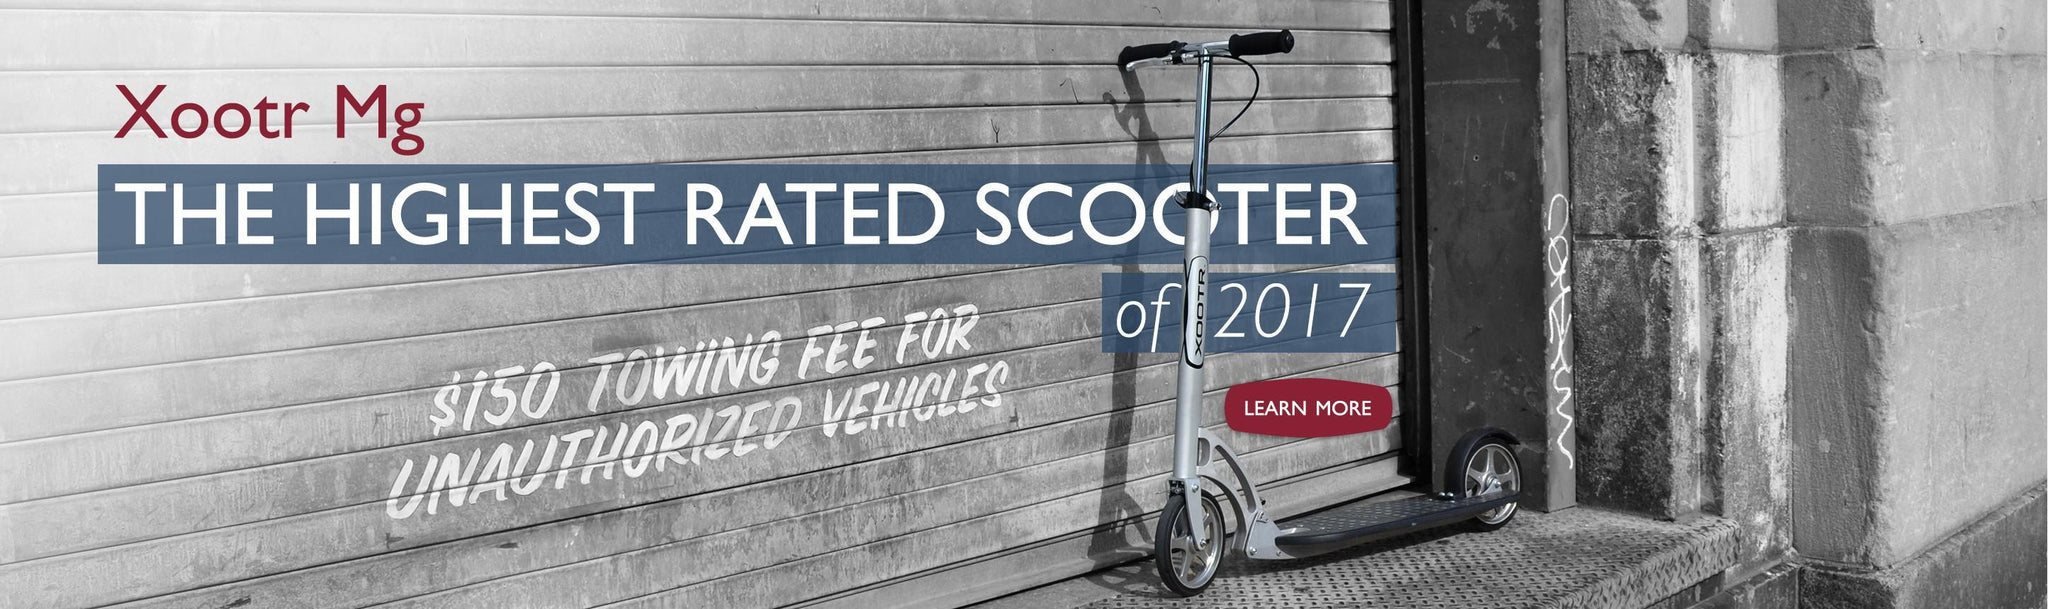 Xootr Mg - Highest rated scooter 2017